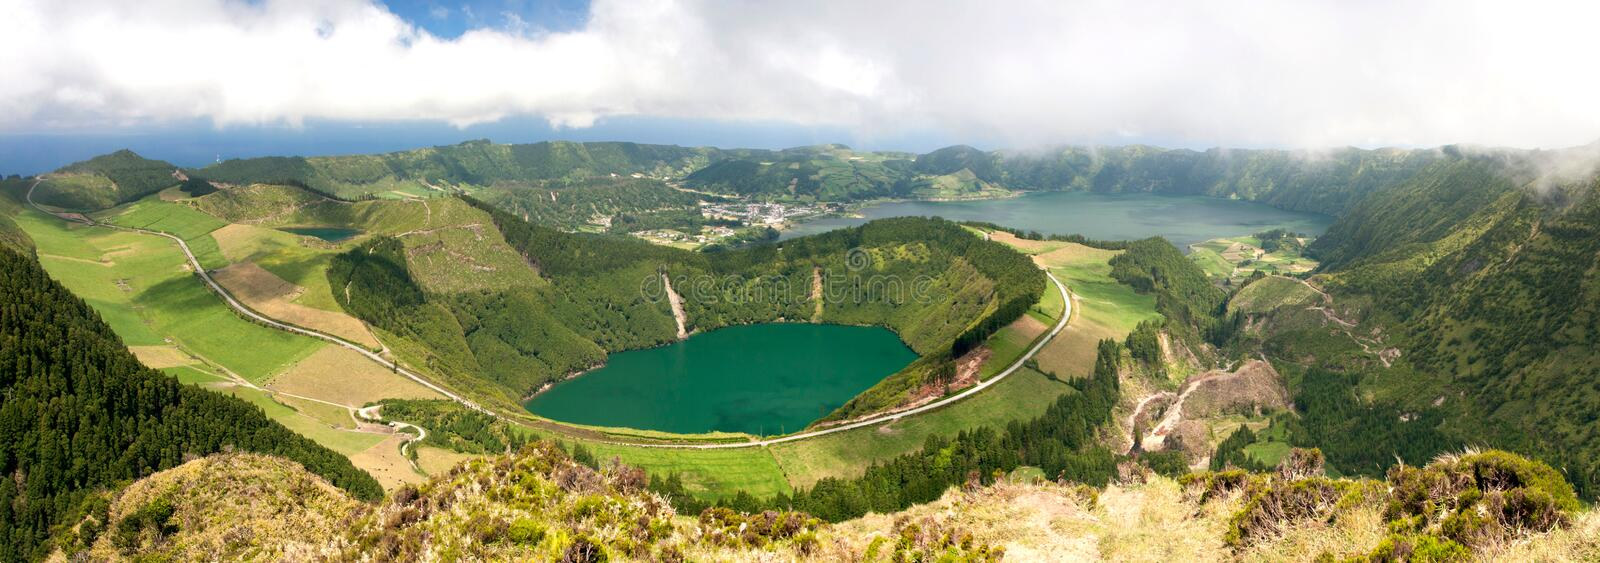 Panoramic view of the lake in a volcanic crater, Sete Cidades royalty free stock image